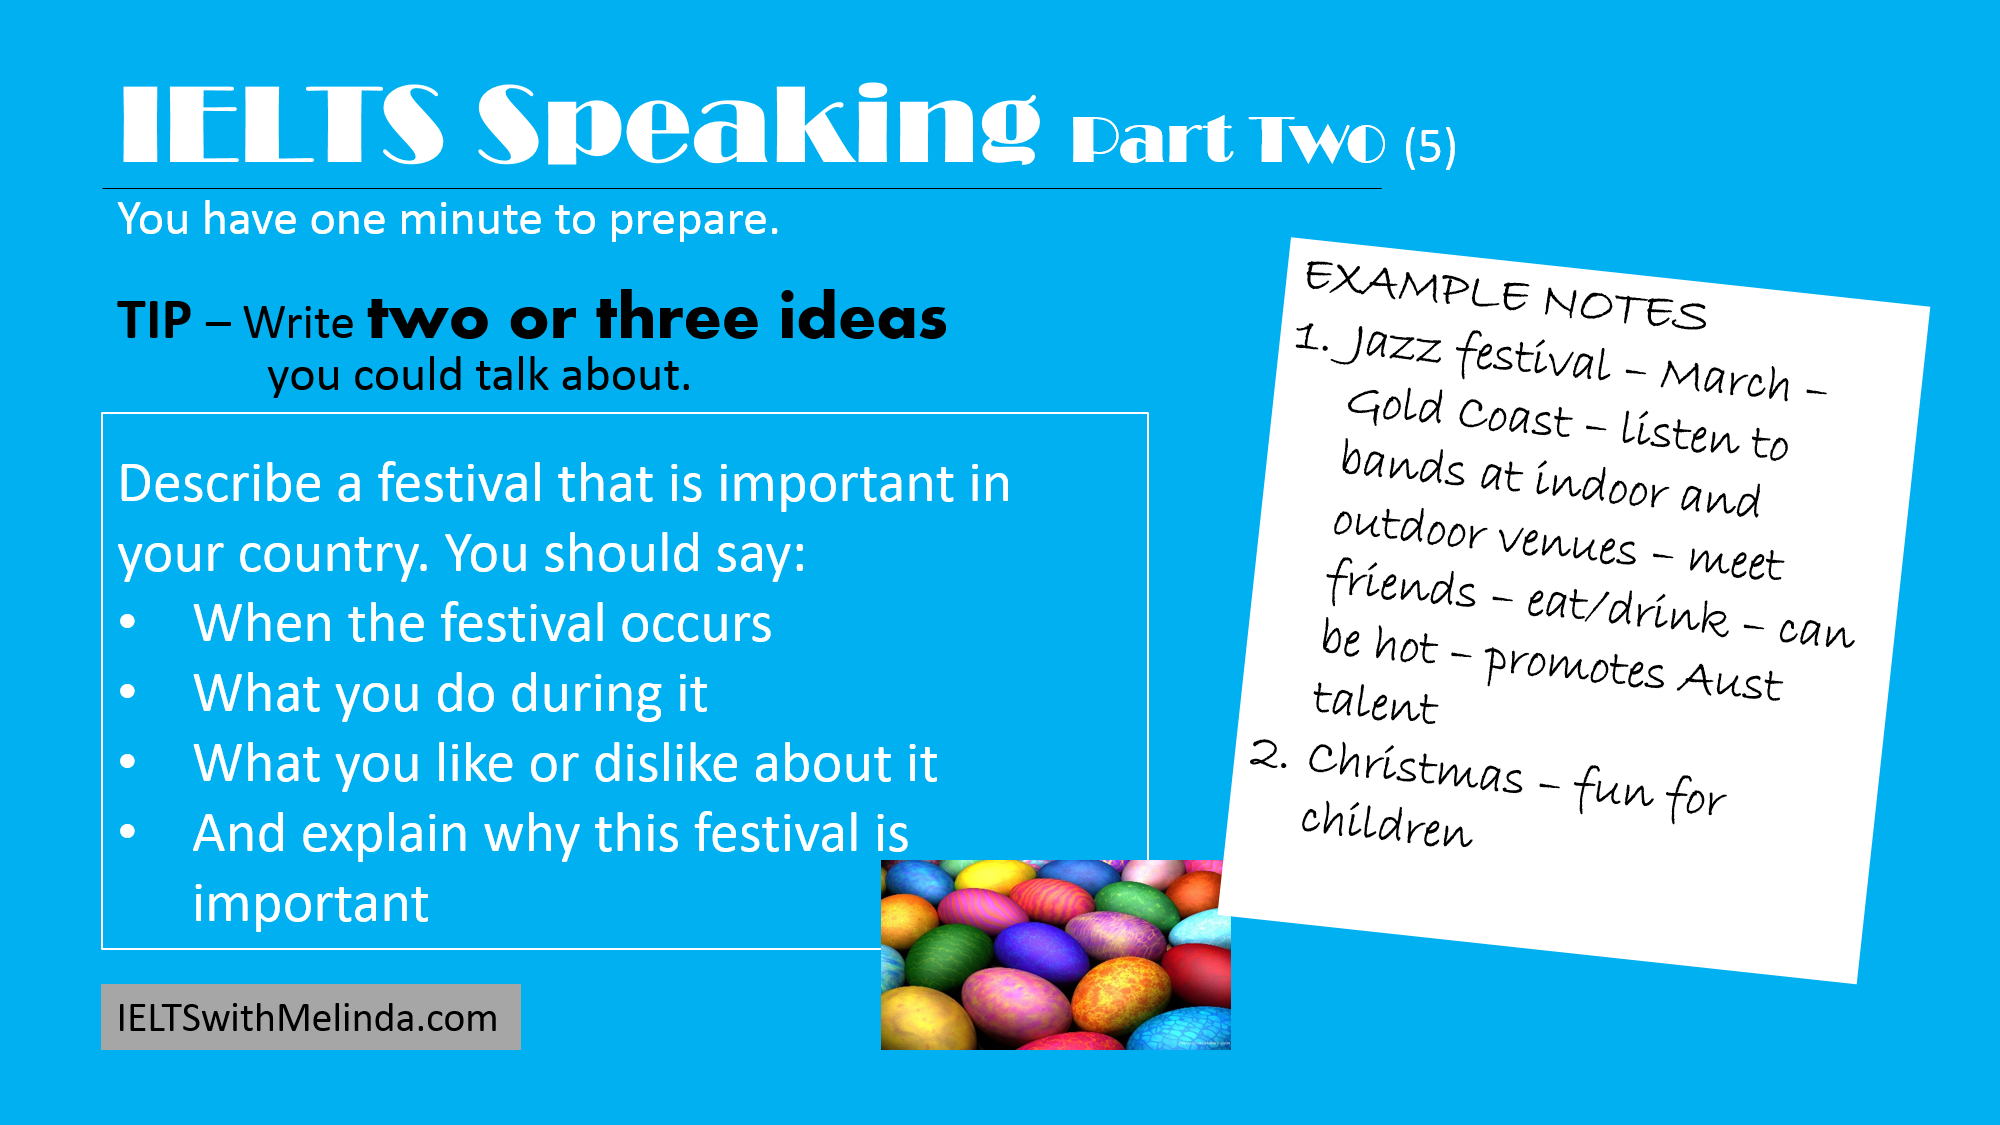 persuasion speech tipping while going out How to write a persuasive speech a persuasive speech is a speech intended to convince the audience to do something whether you want to get people to vote, stop littering, or change their minds about an important issue, persuasive.